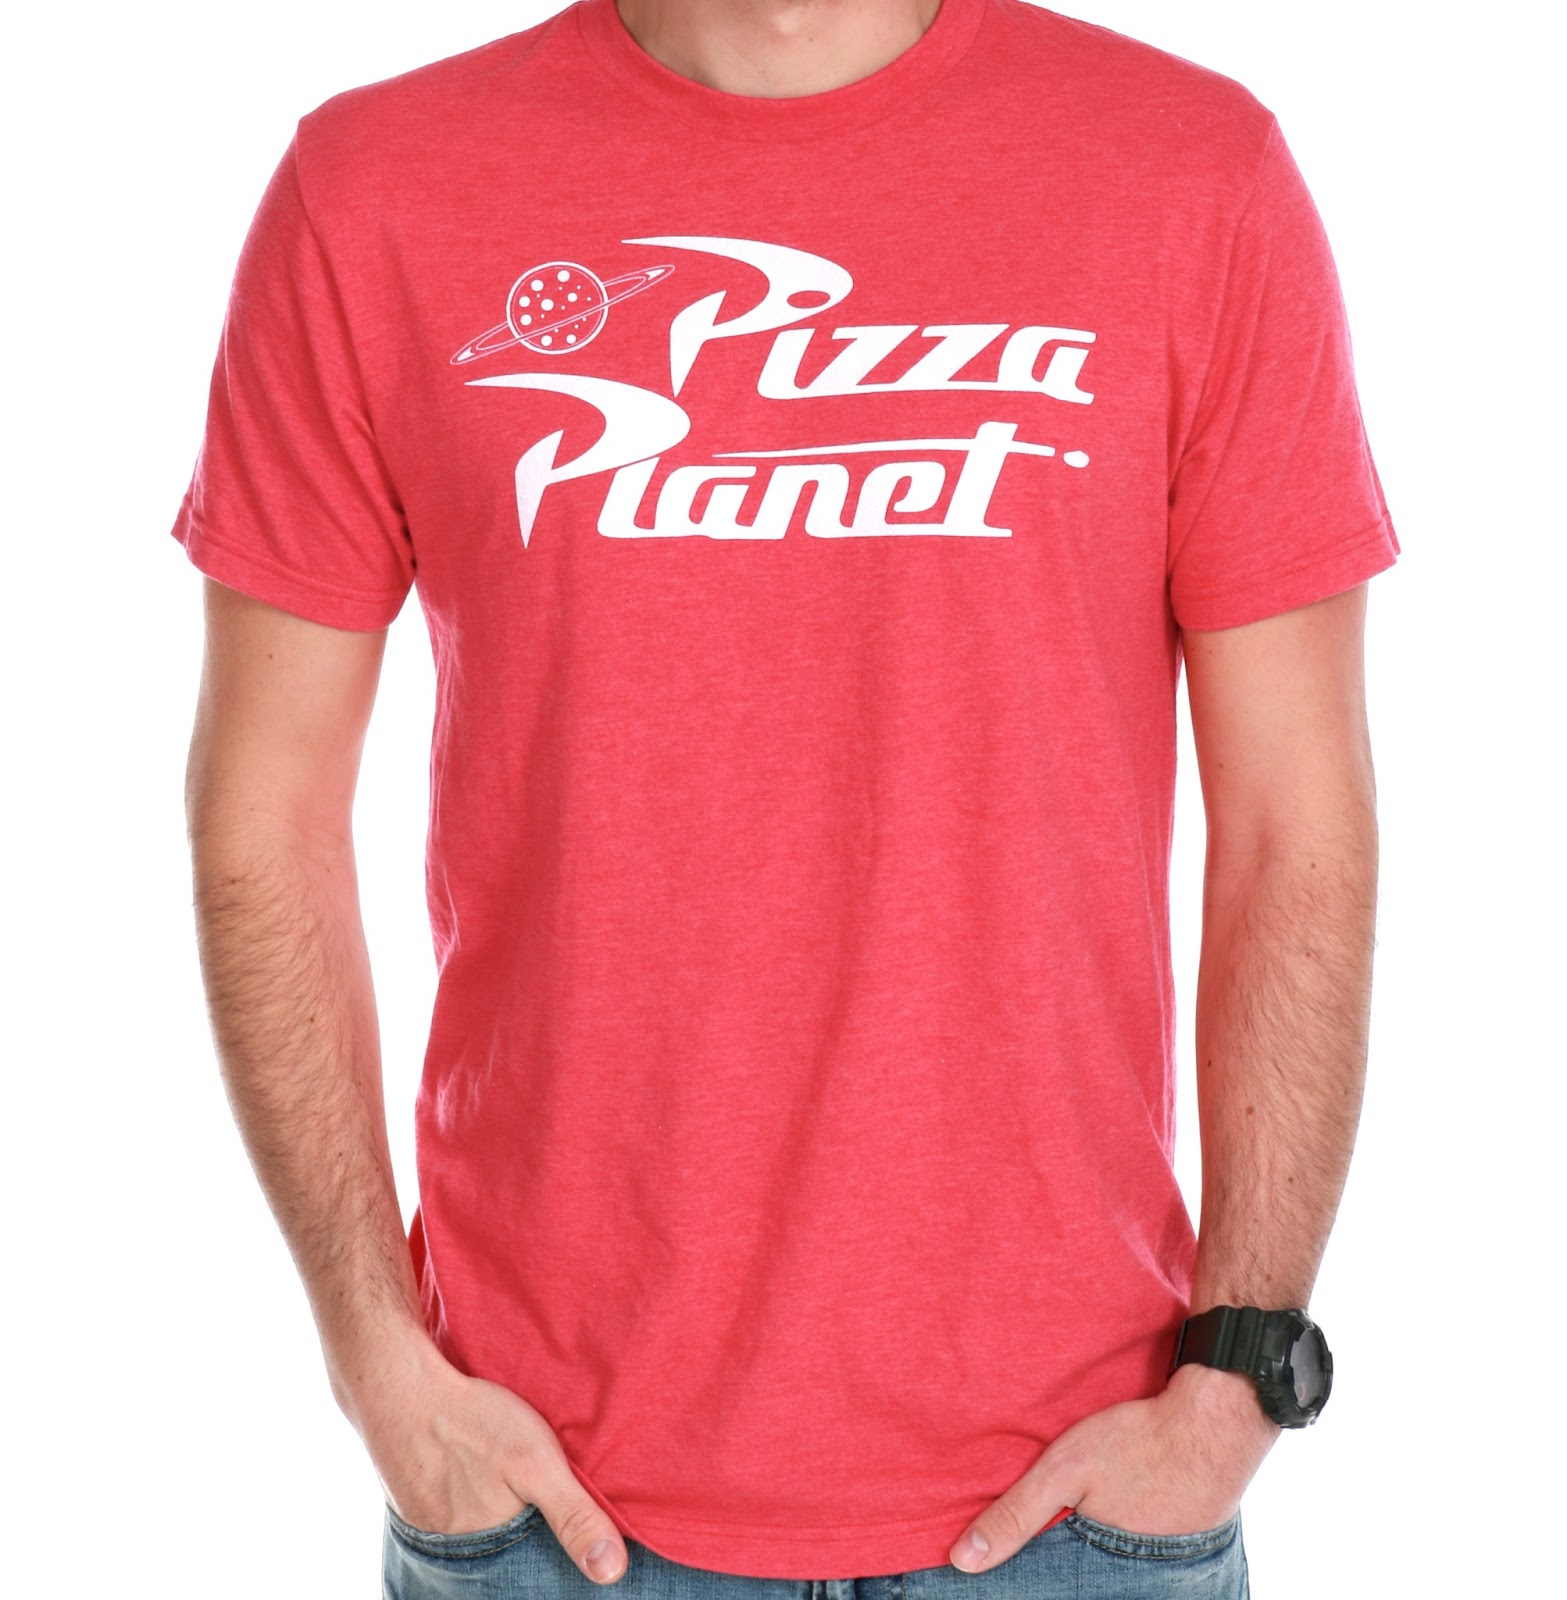 toy story pizza planet tee t-shirt